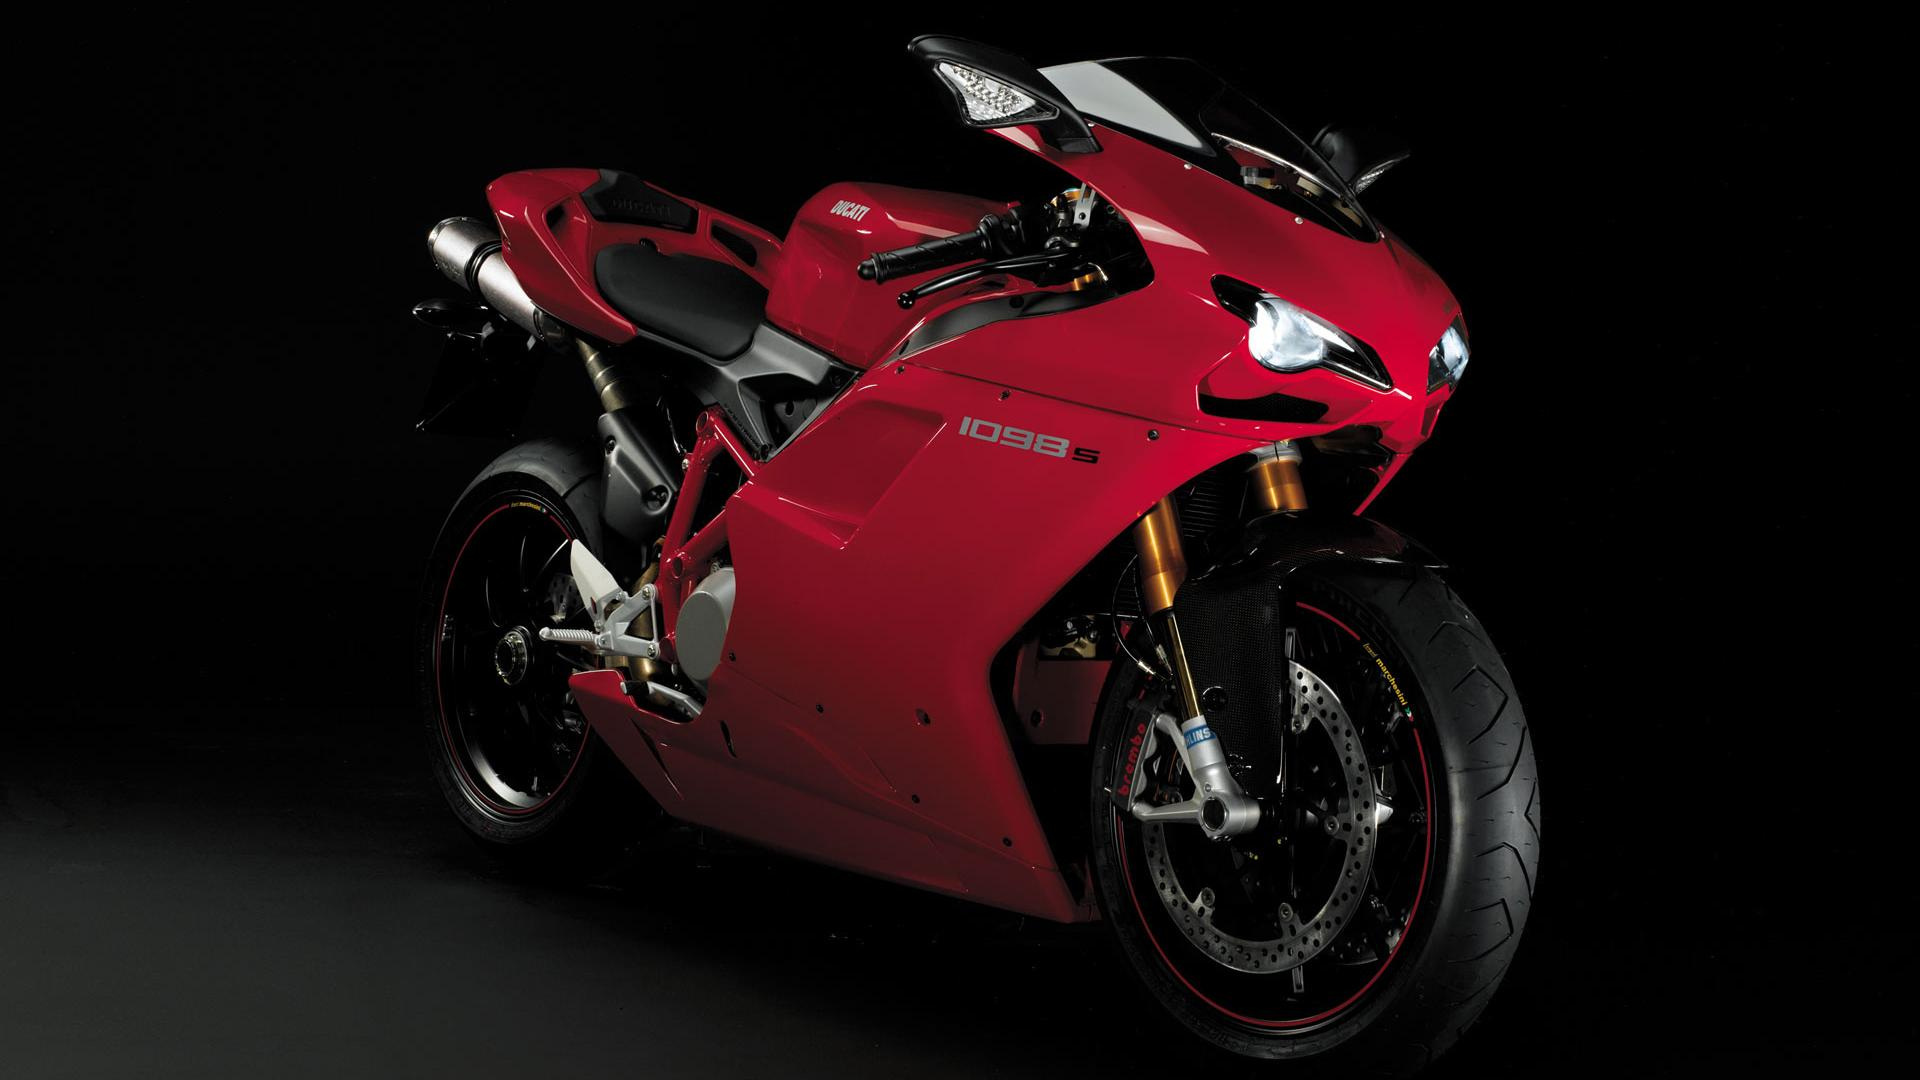 ducati honda action fight wallpaper wallpapers 1920x1080 1920x1080